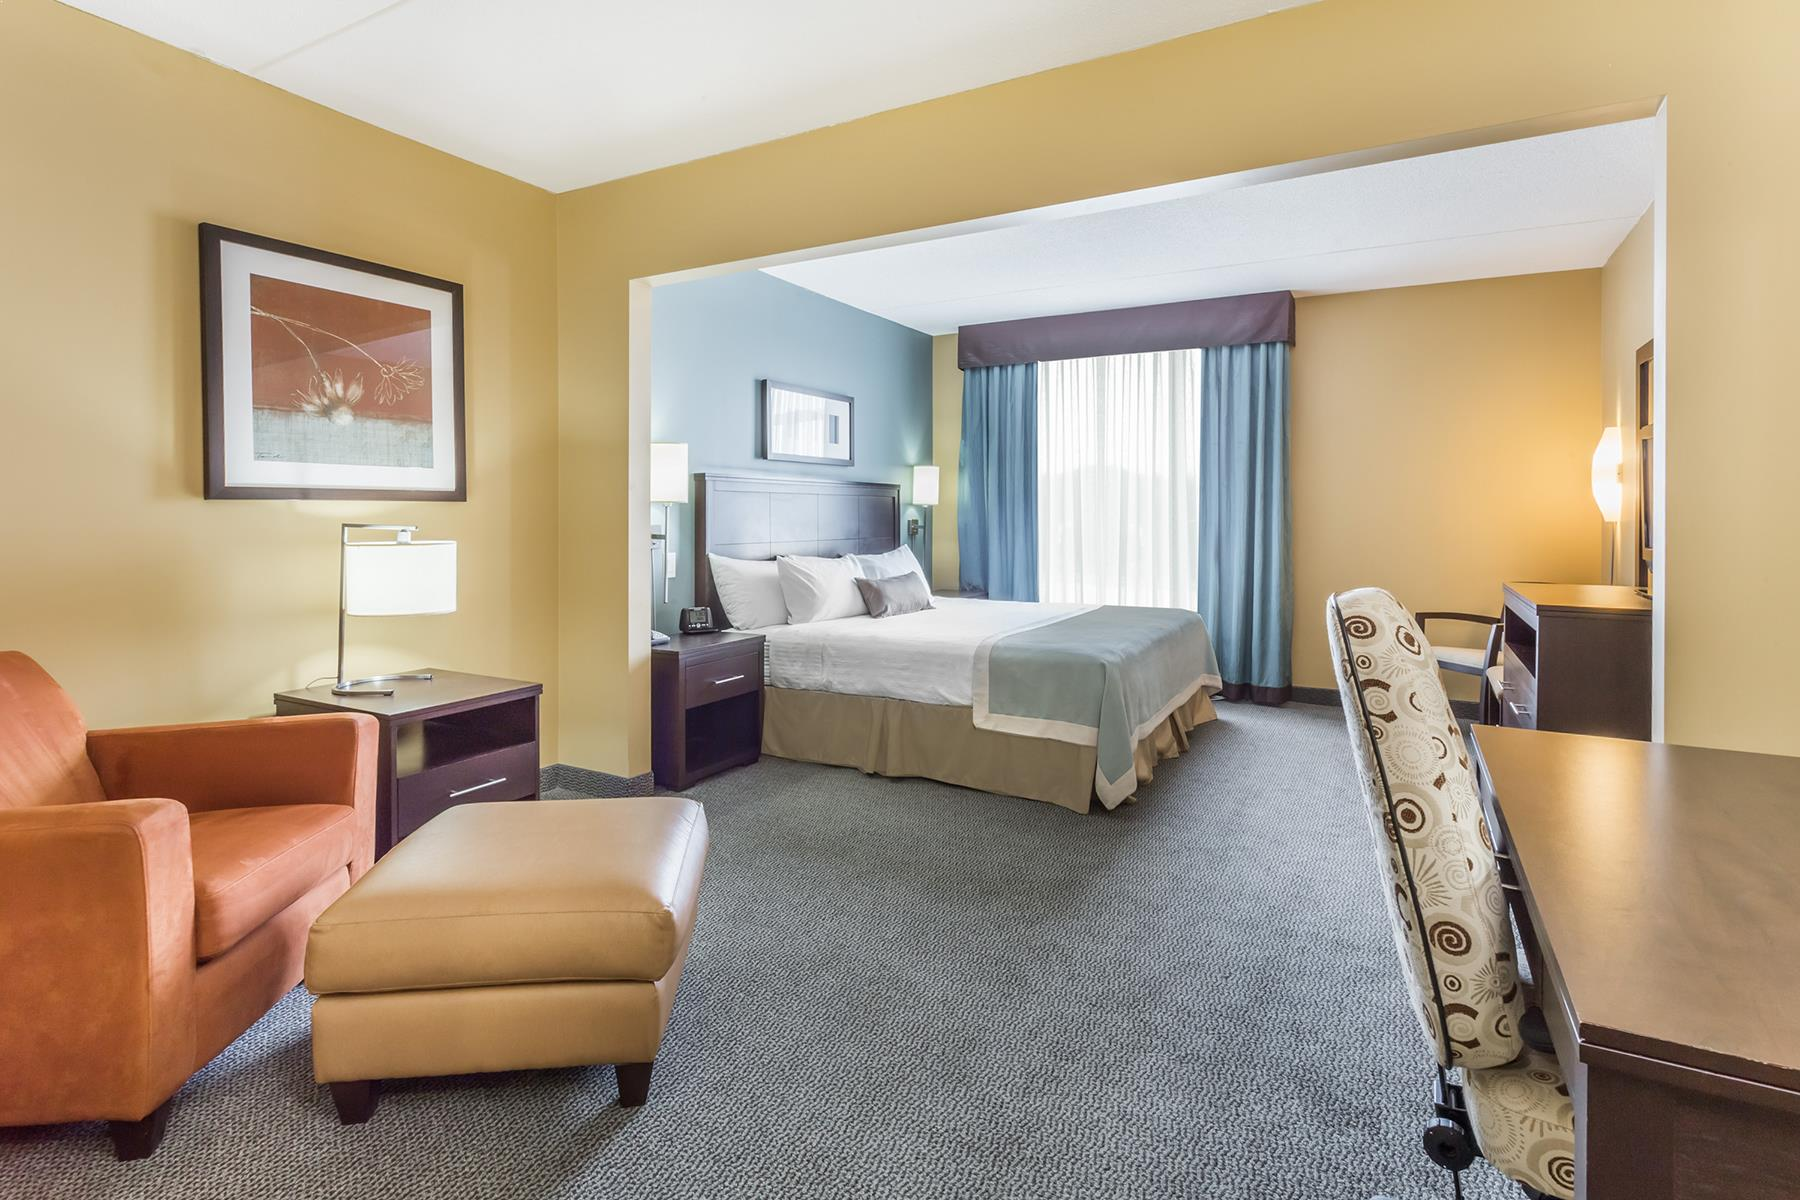 A spacious king bedroom at the Wingate by Wyndham Hotel in Regina Saskatchewan